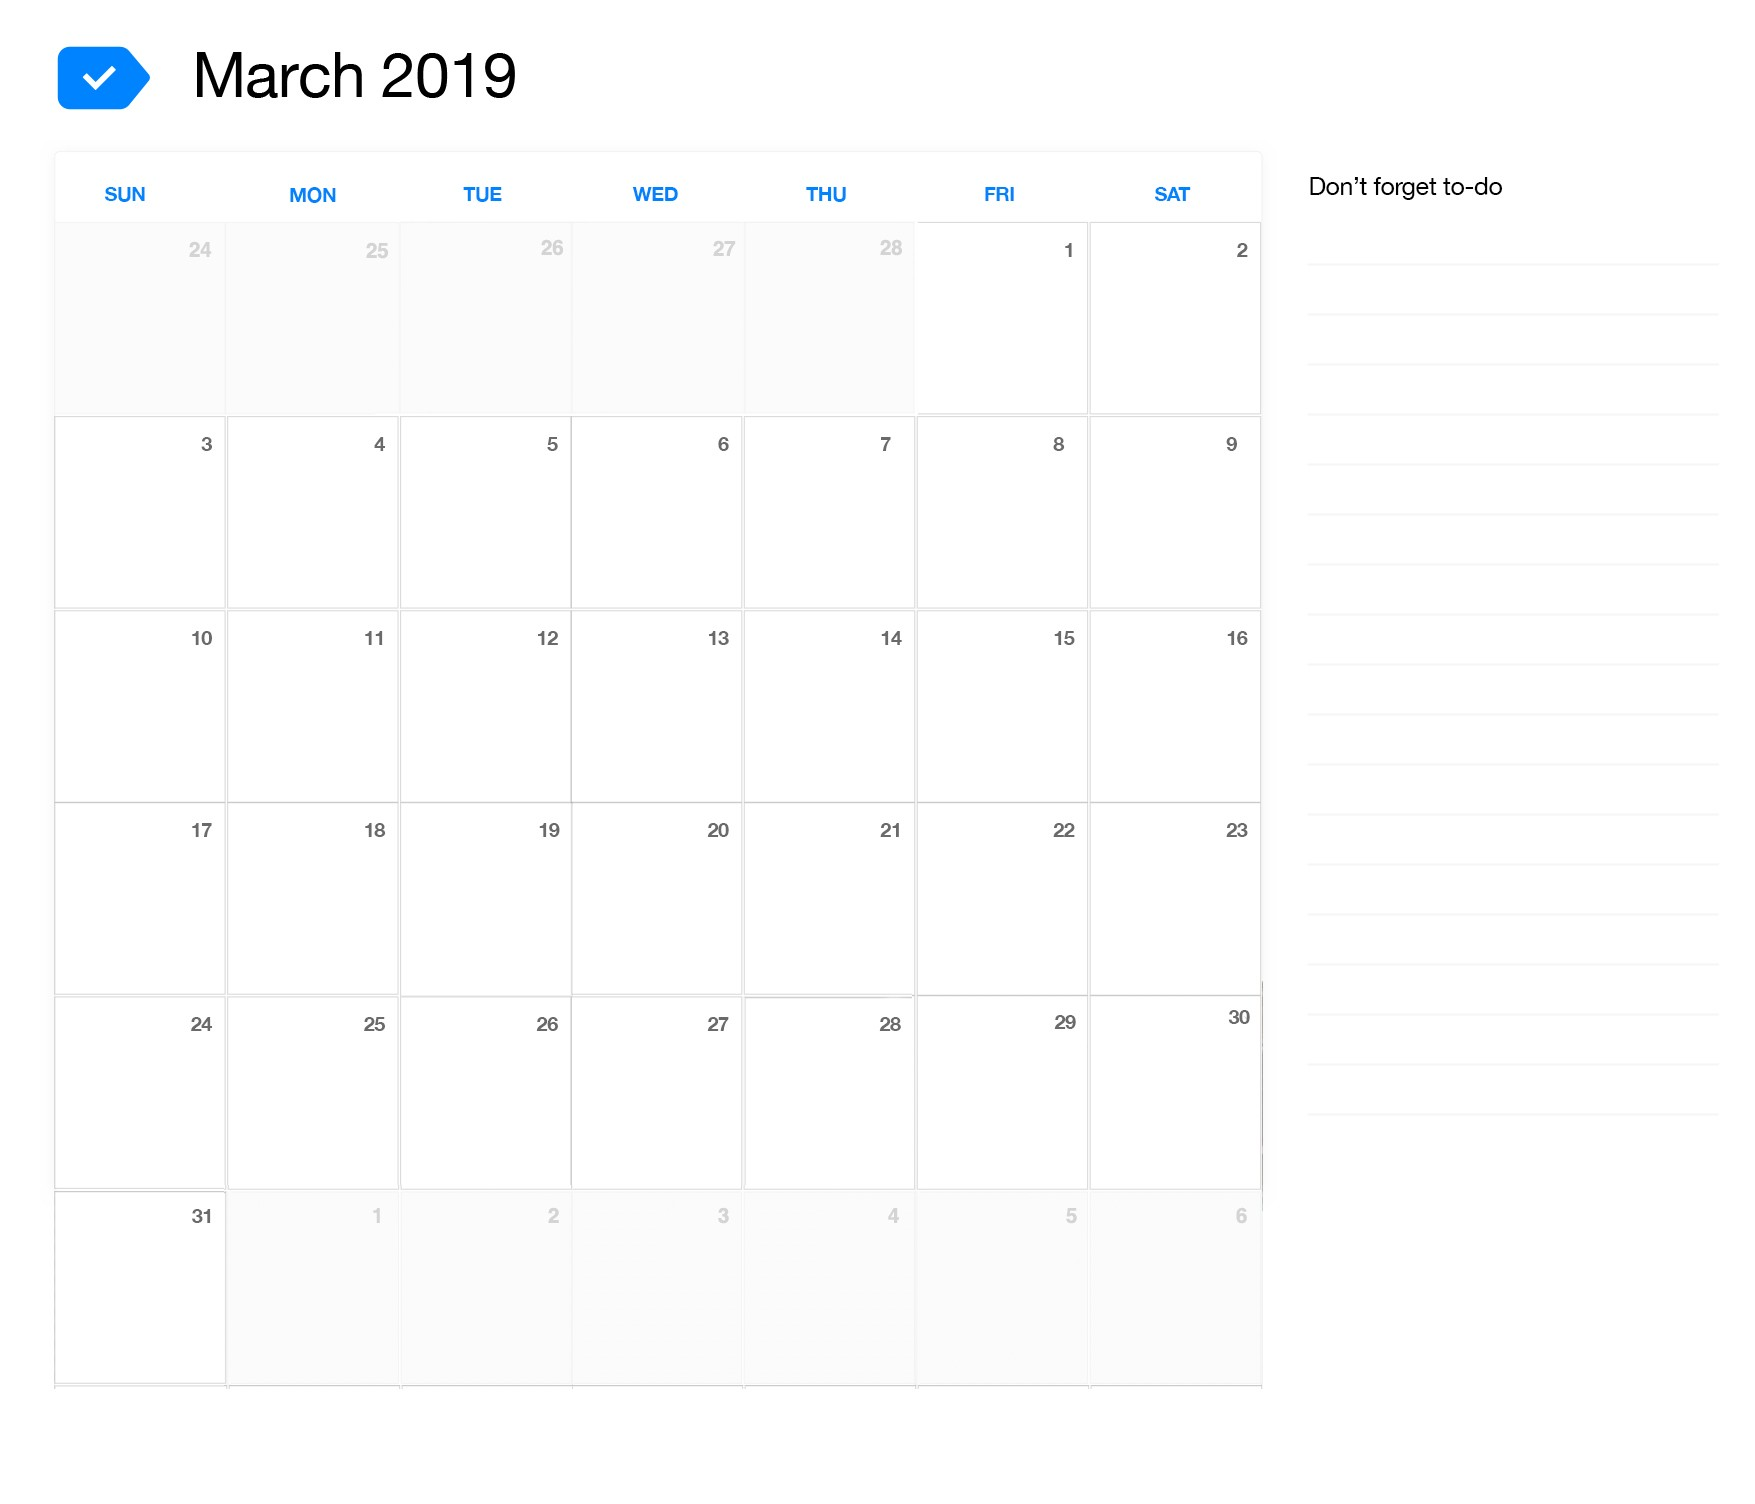 March Calendar 2019 Más Recientes March 2019 Printable Calendar Of March Calendar 2019 Más Populares February March Calendar 2019 2018 Printable Calendar Store